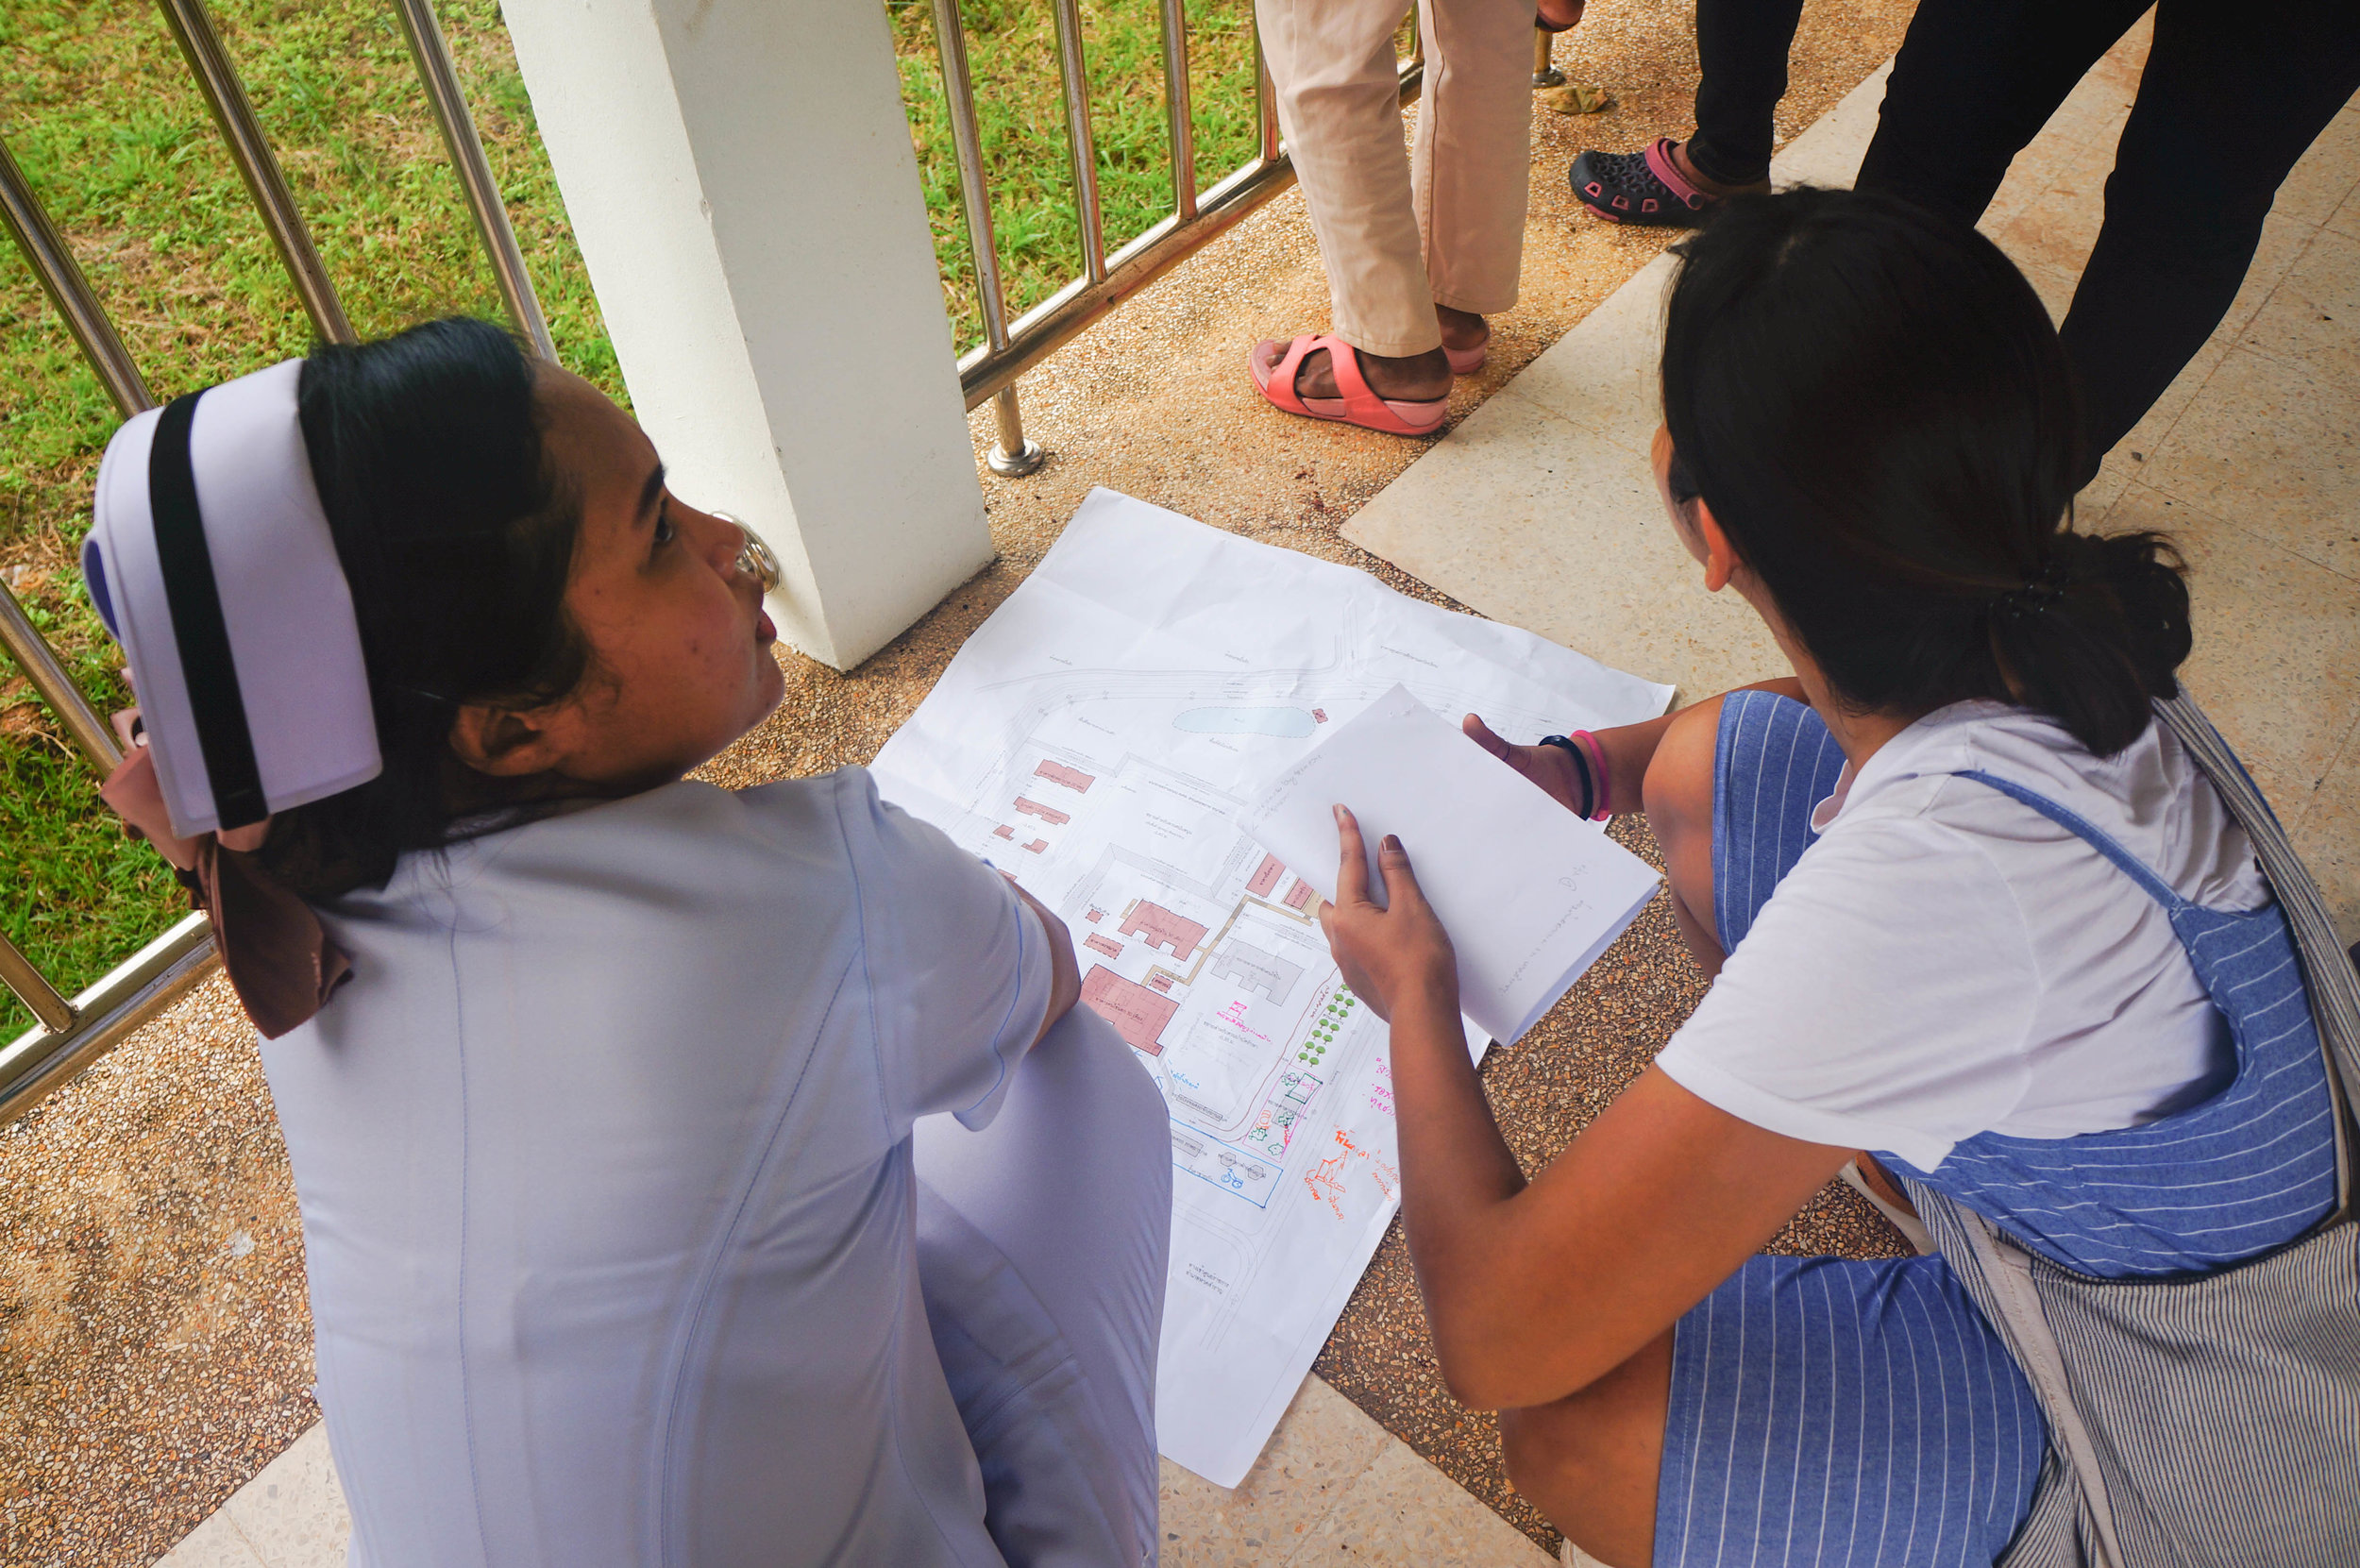 King's Hospitals project: Using a participatory process to renovate the Had Samran community hospital with Universal Design in Thailand